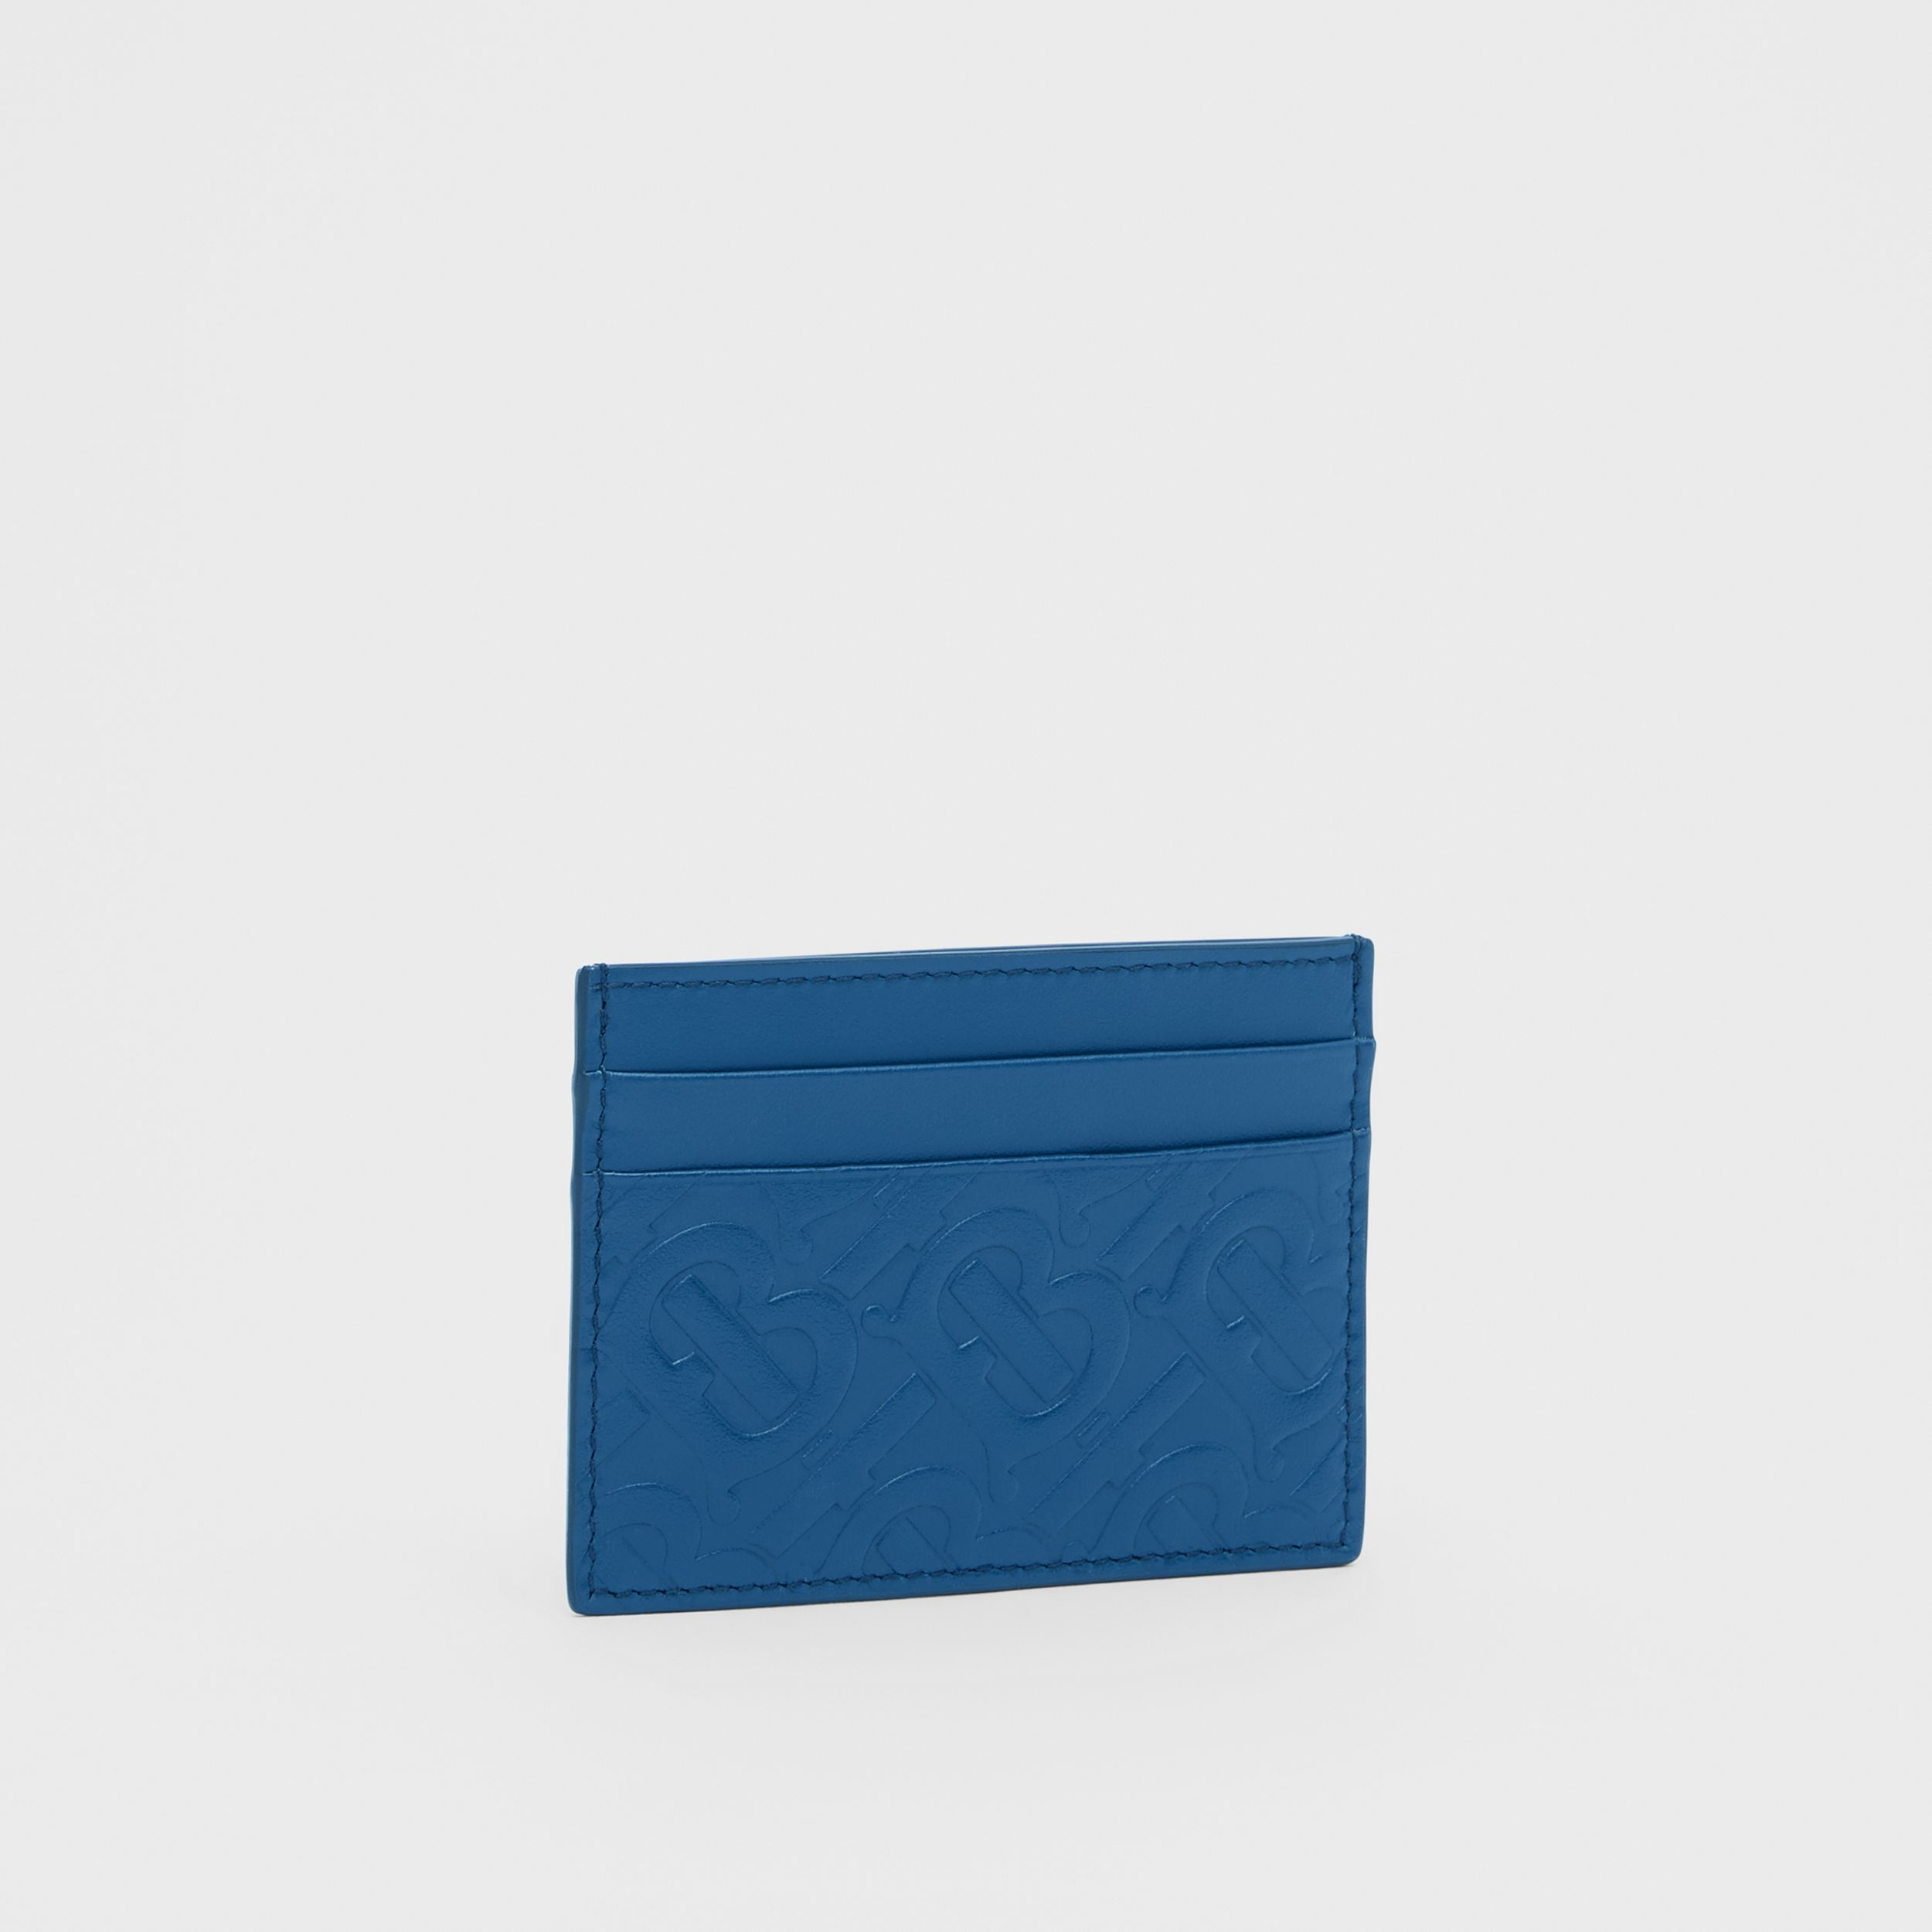 Monogram Leather Card Case in Pale Canvas Blue - Men | Burberry United States - 4